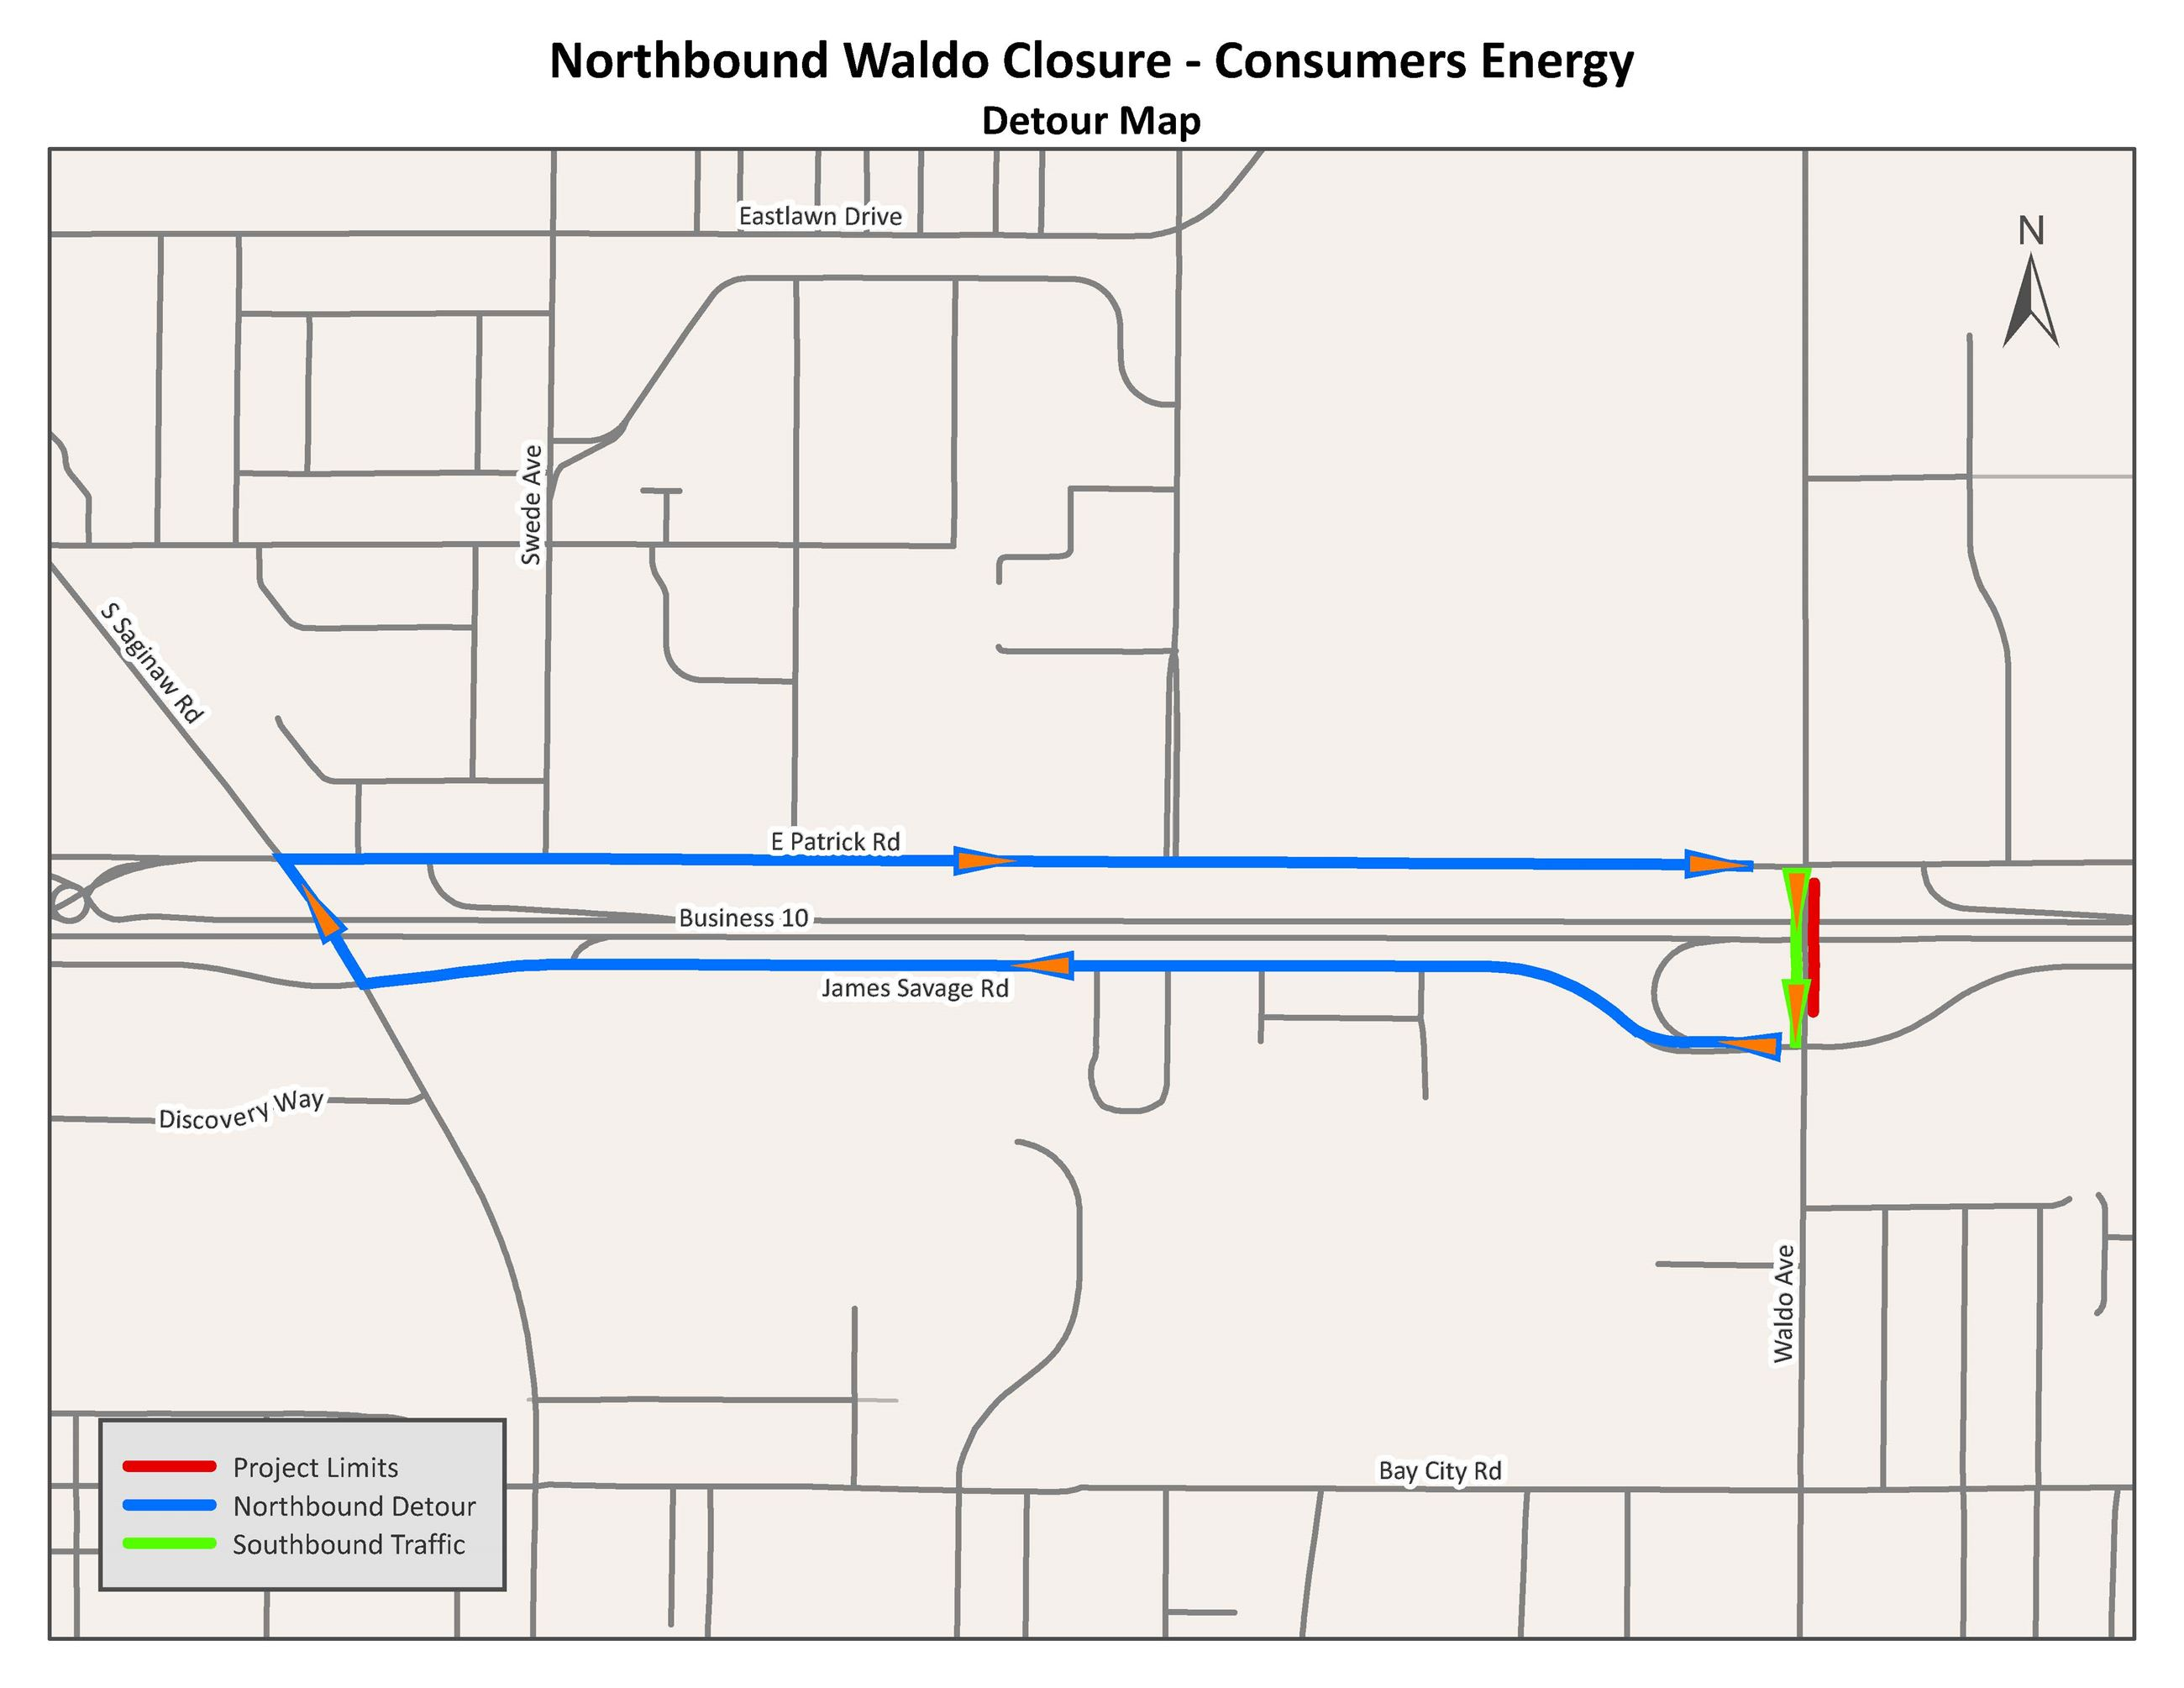 A map of the detour routes around the closure on Waldo Avenue